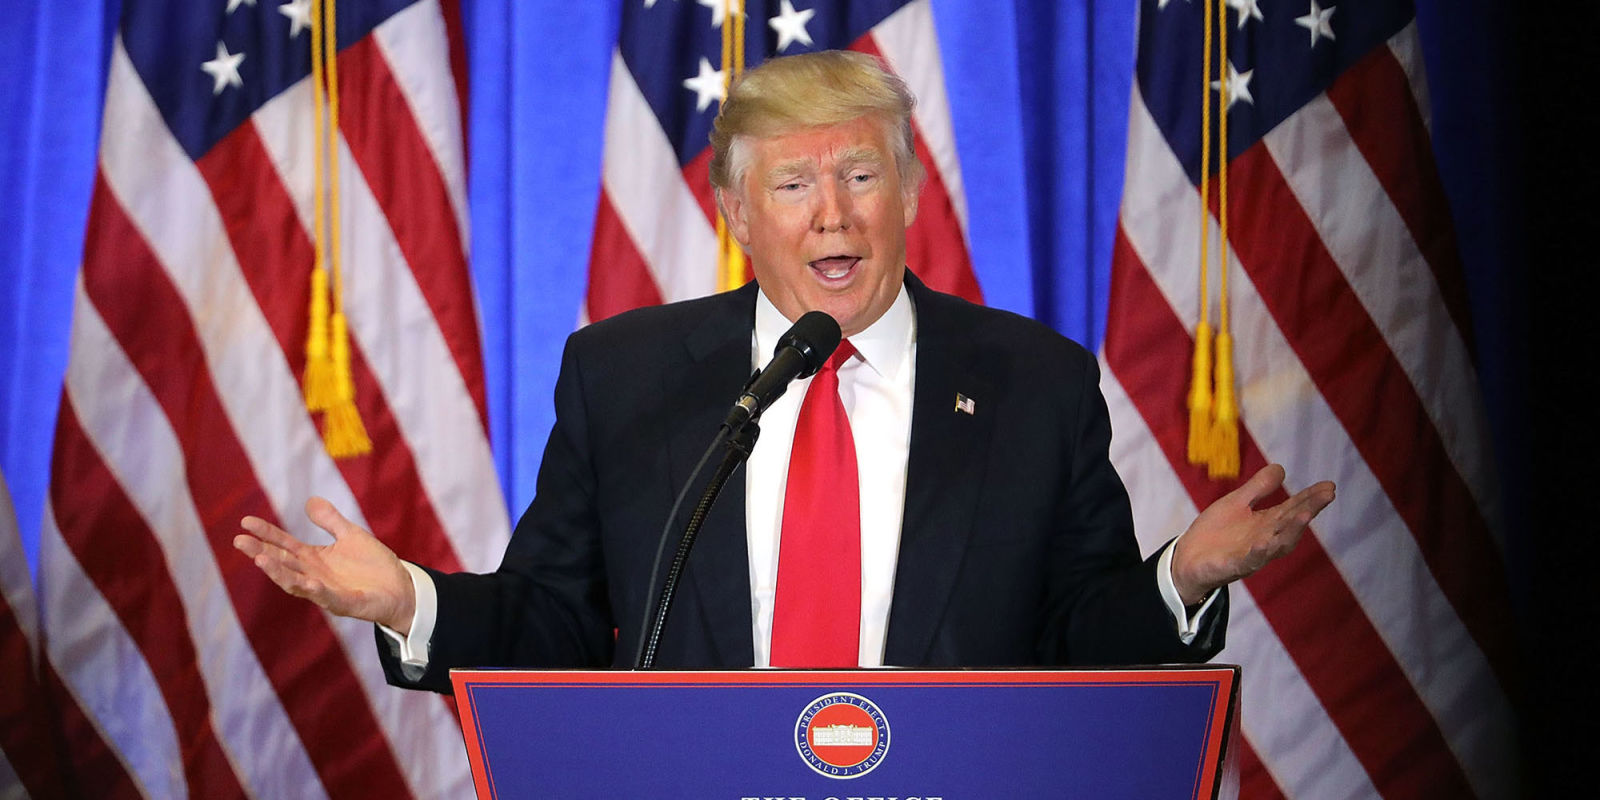 Donald Trump Press Conference Was a Live Performance from an Aspiring American Dictator